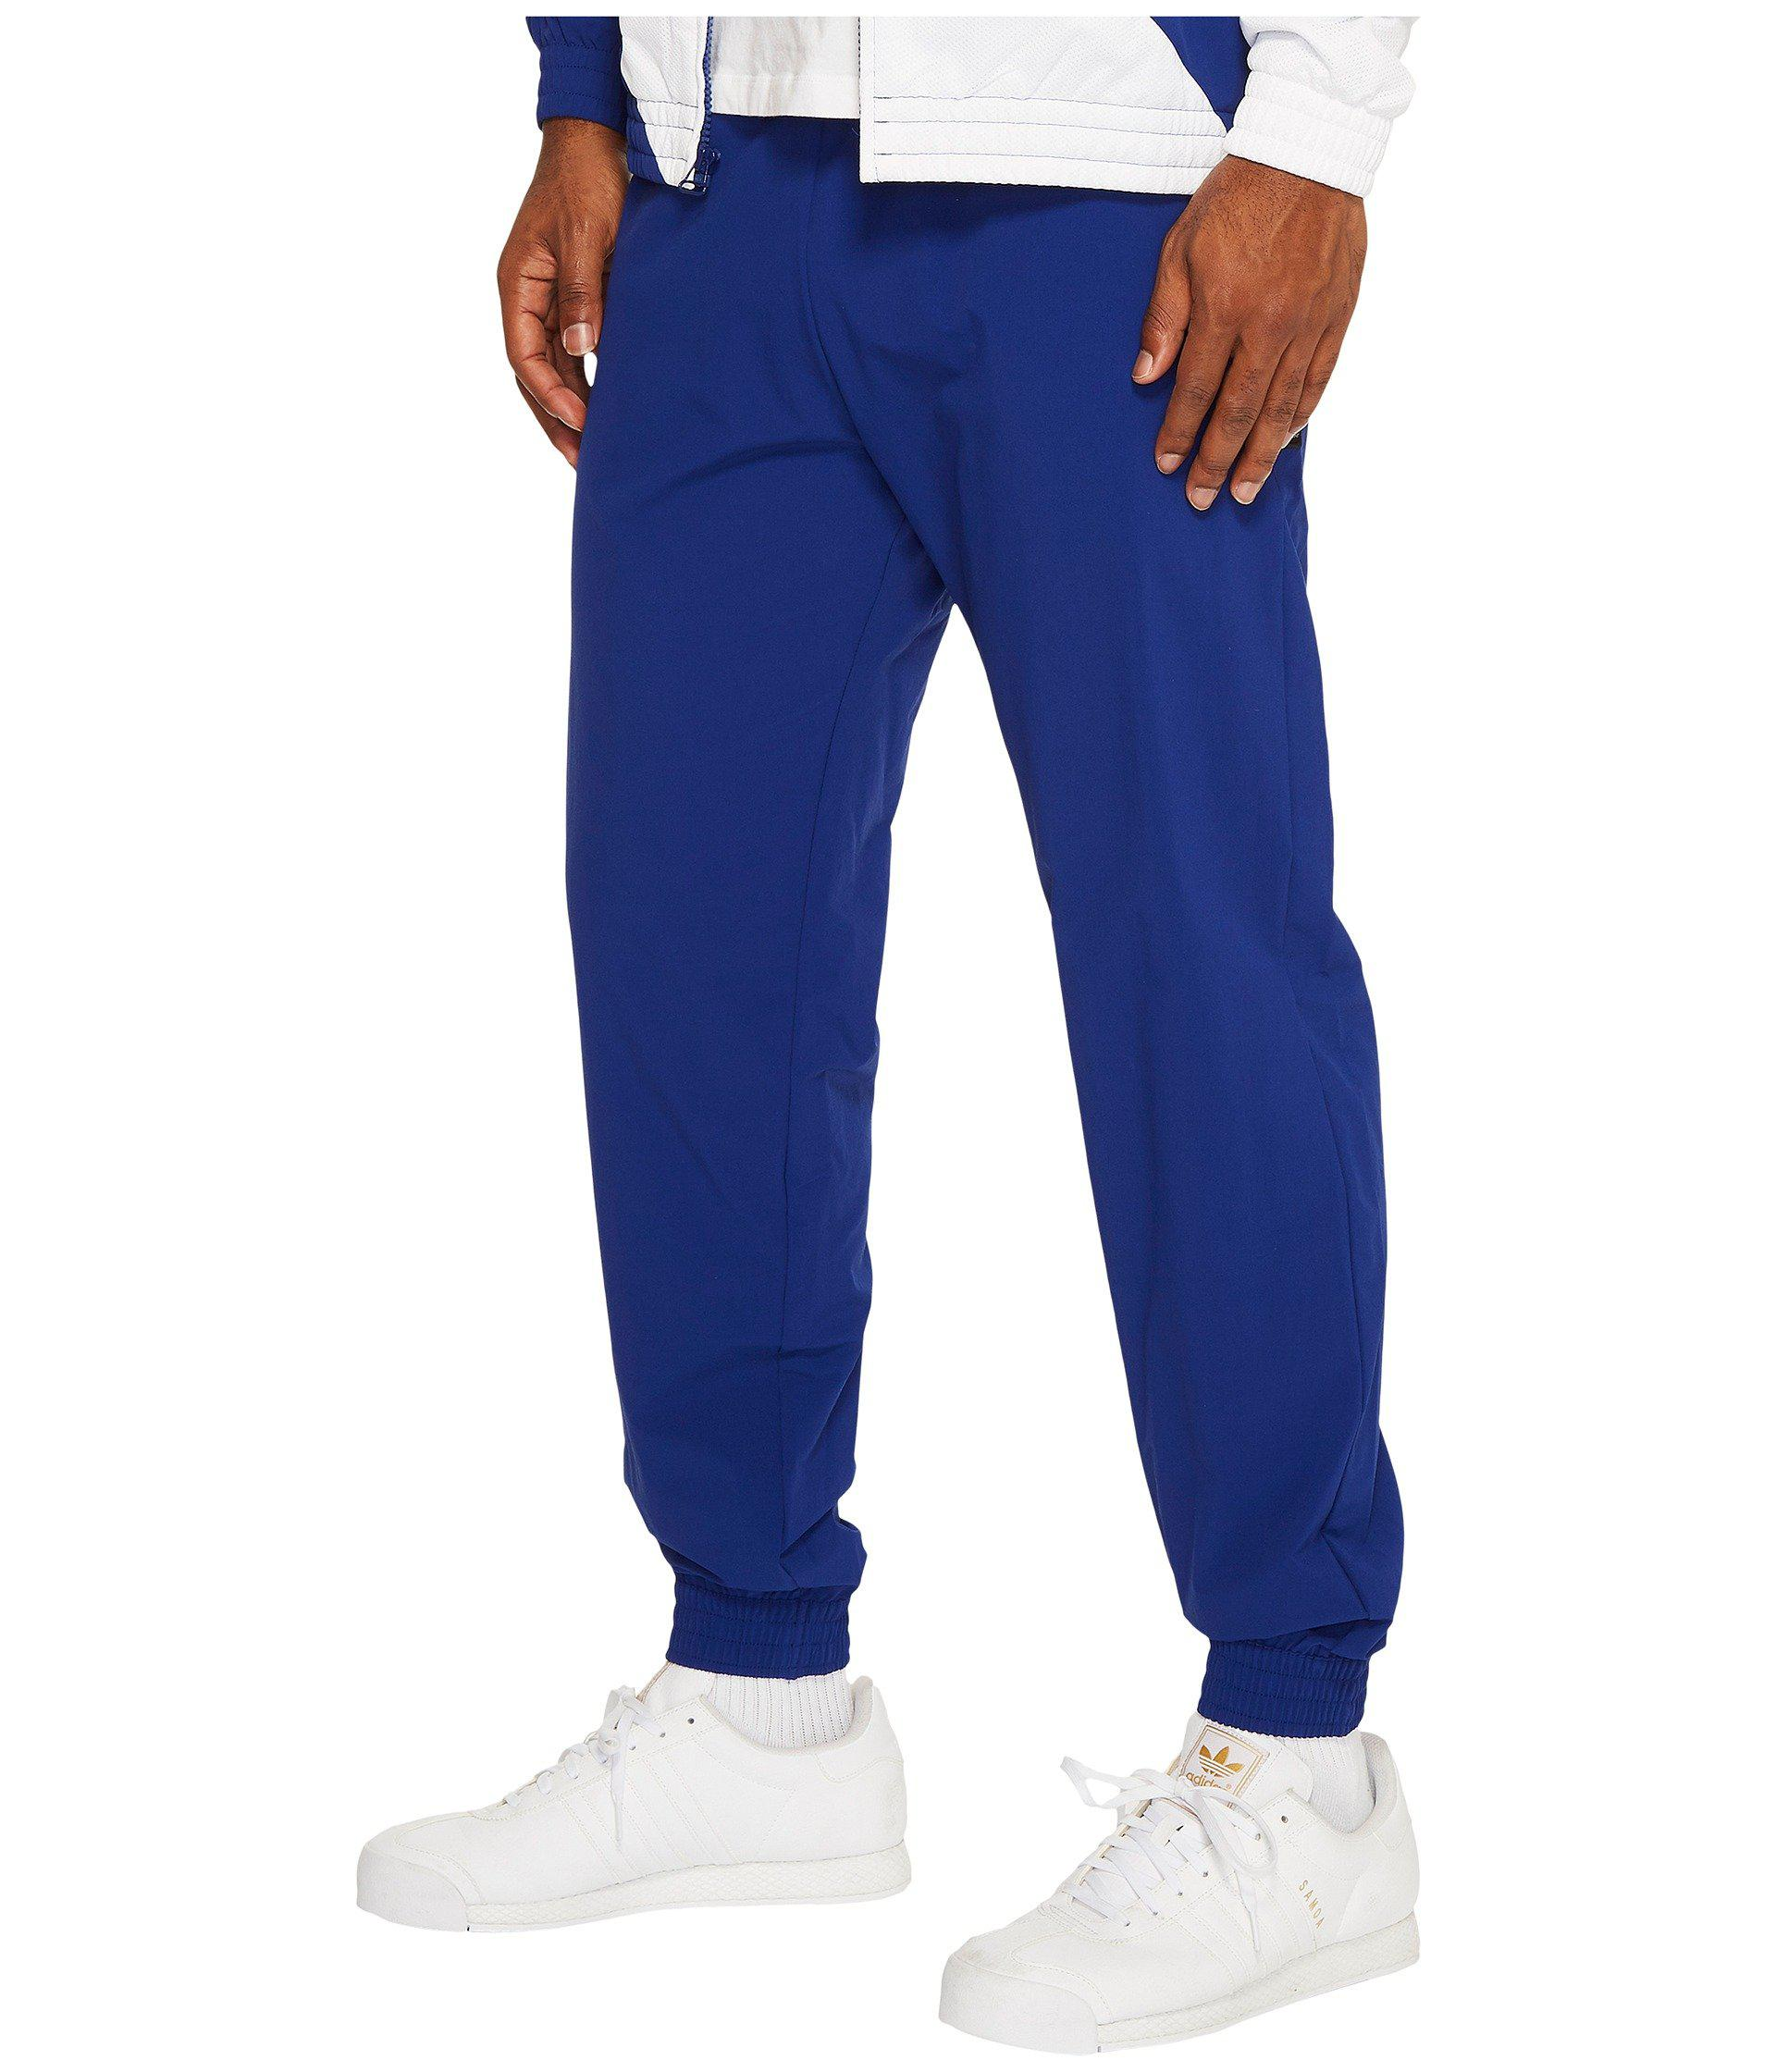 17e4617e049f Lyst - adidas Originals Pdx Track Pants in Blue for Men